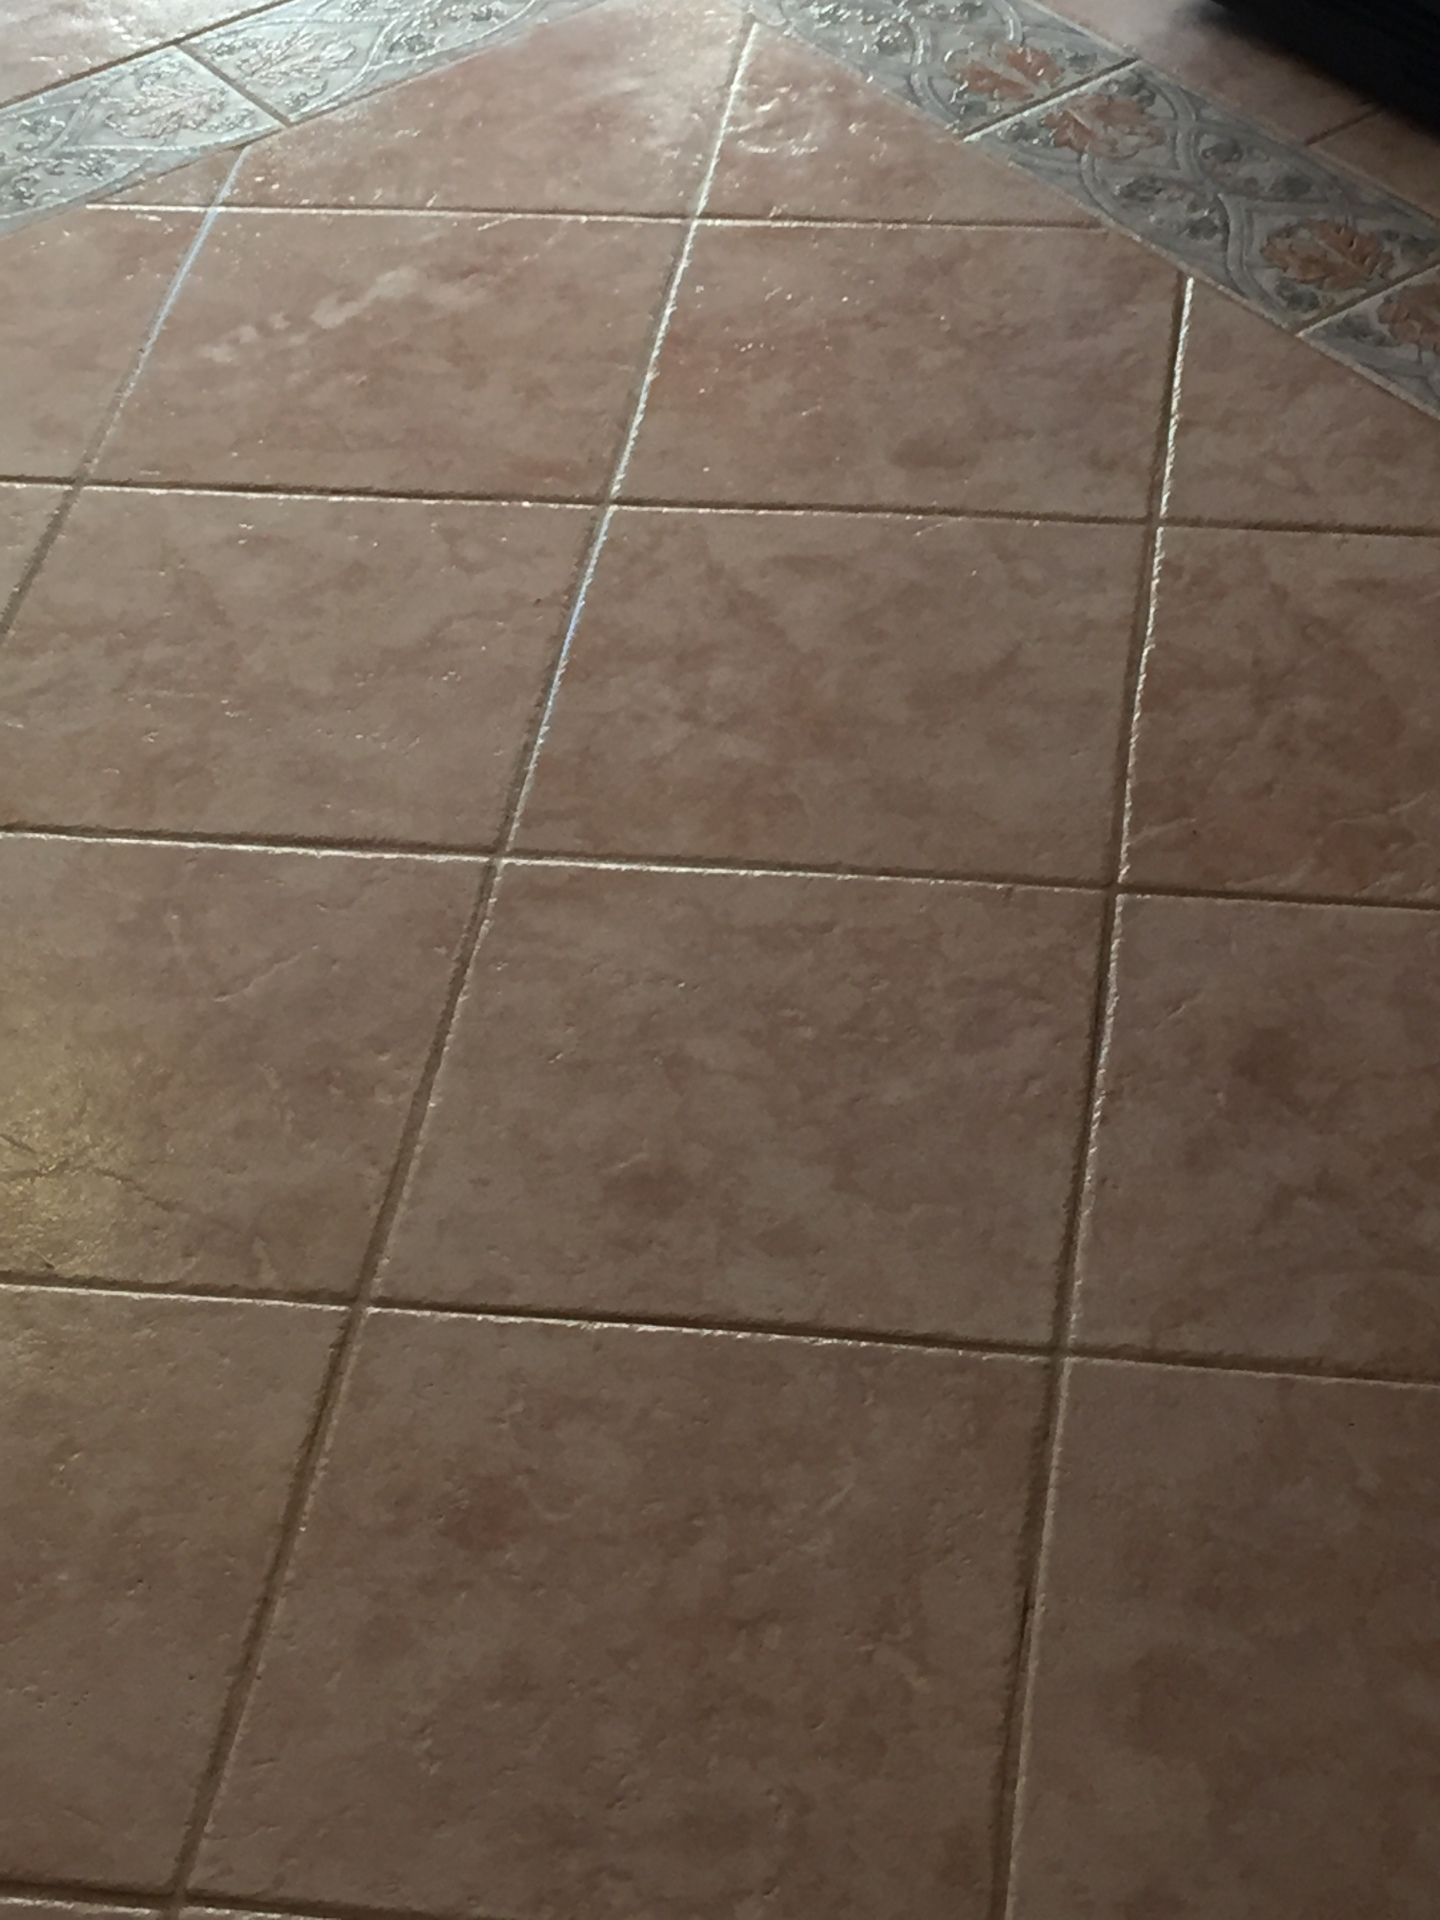 After tile and grout cleaned